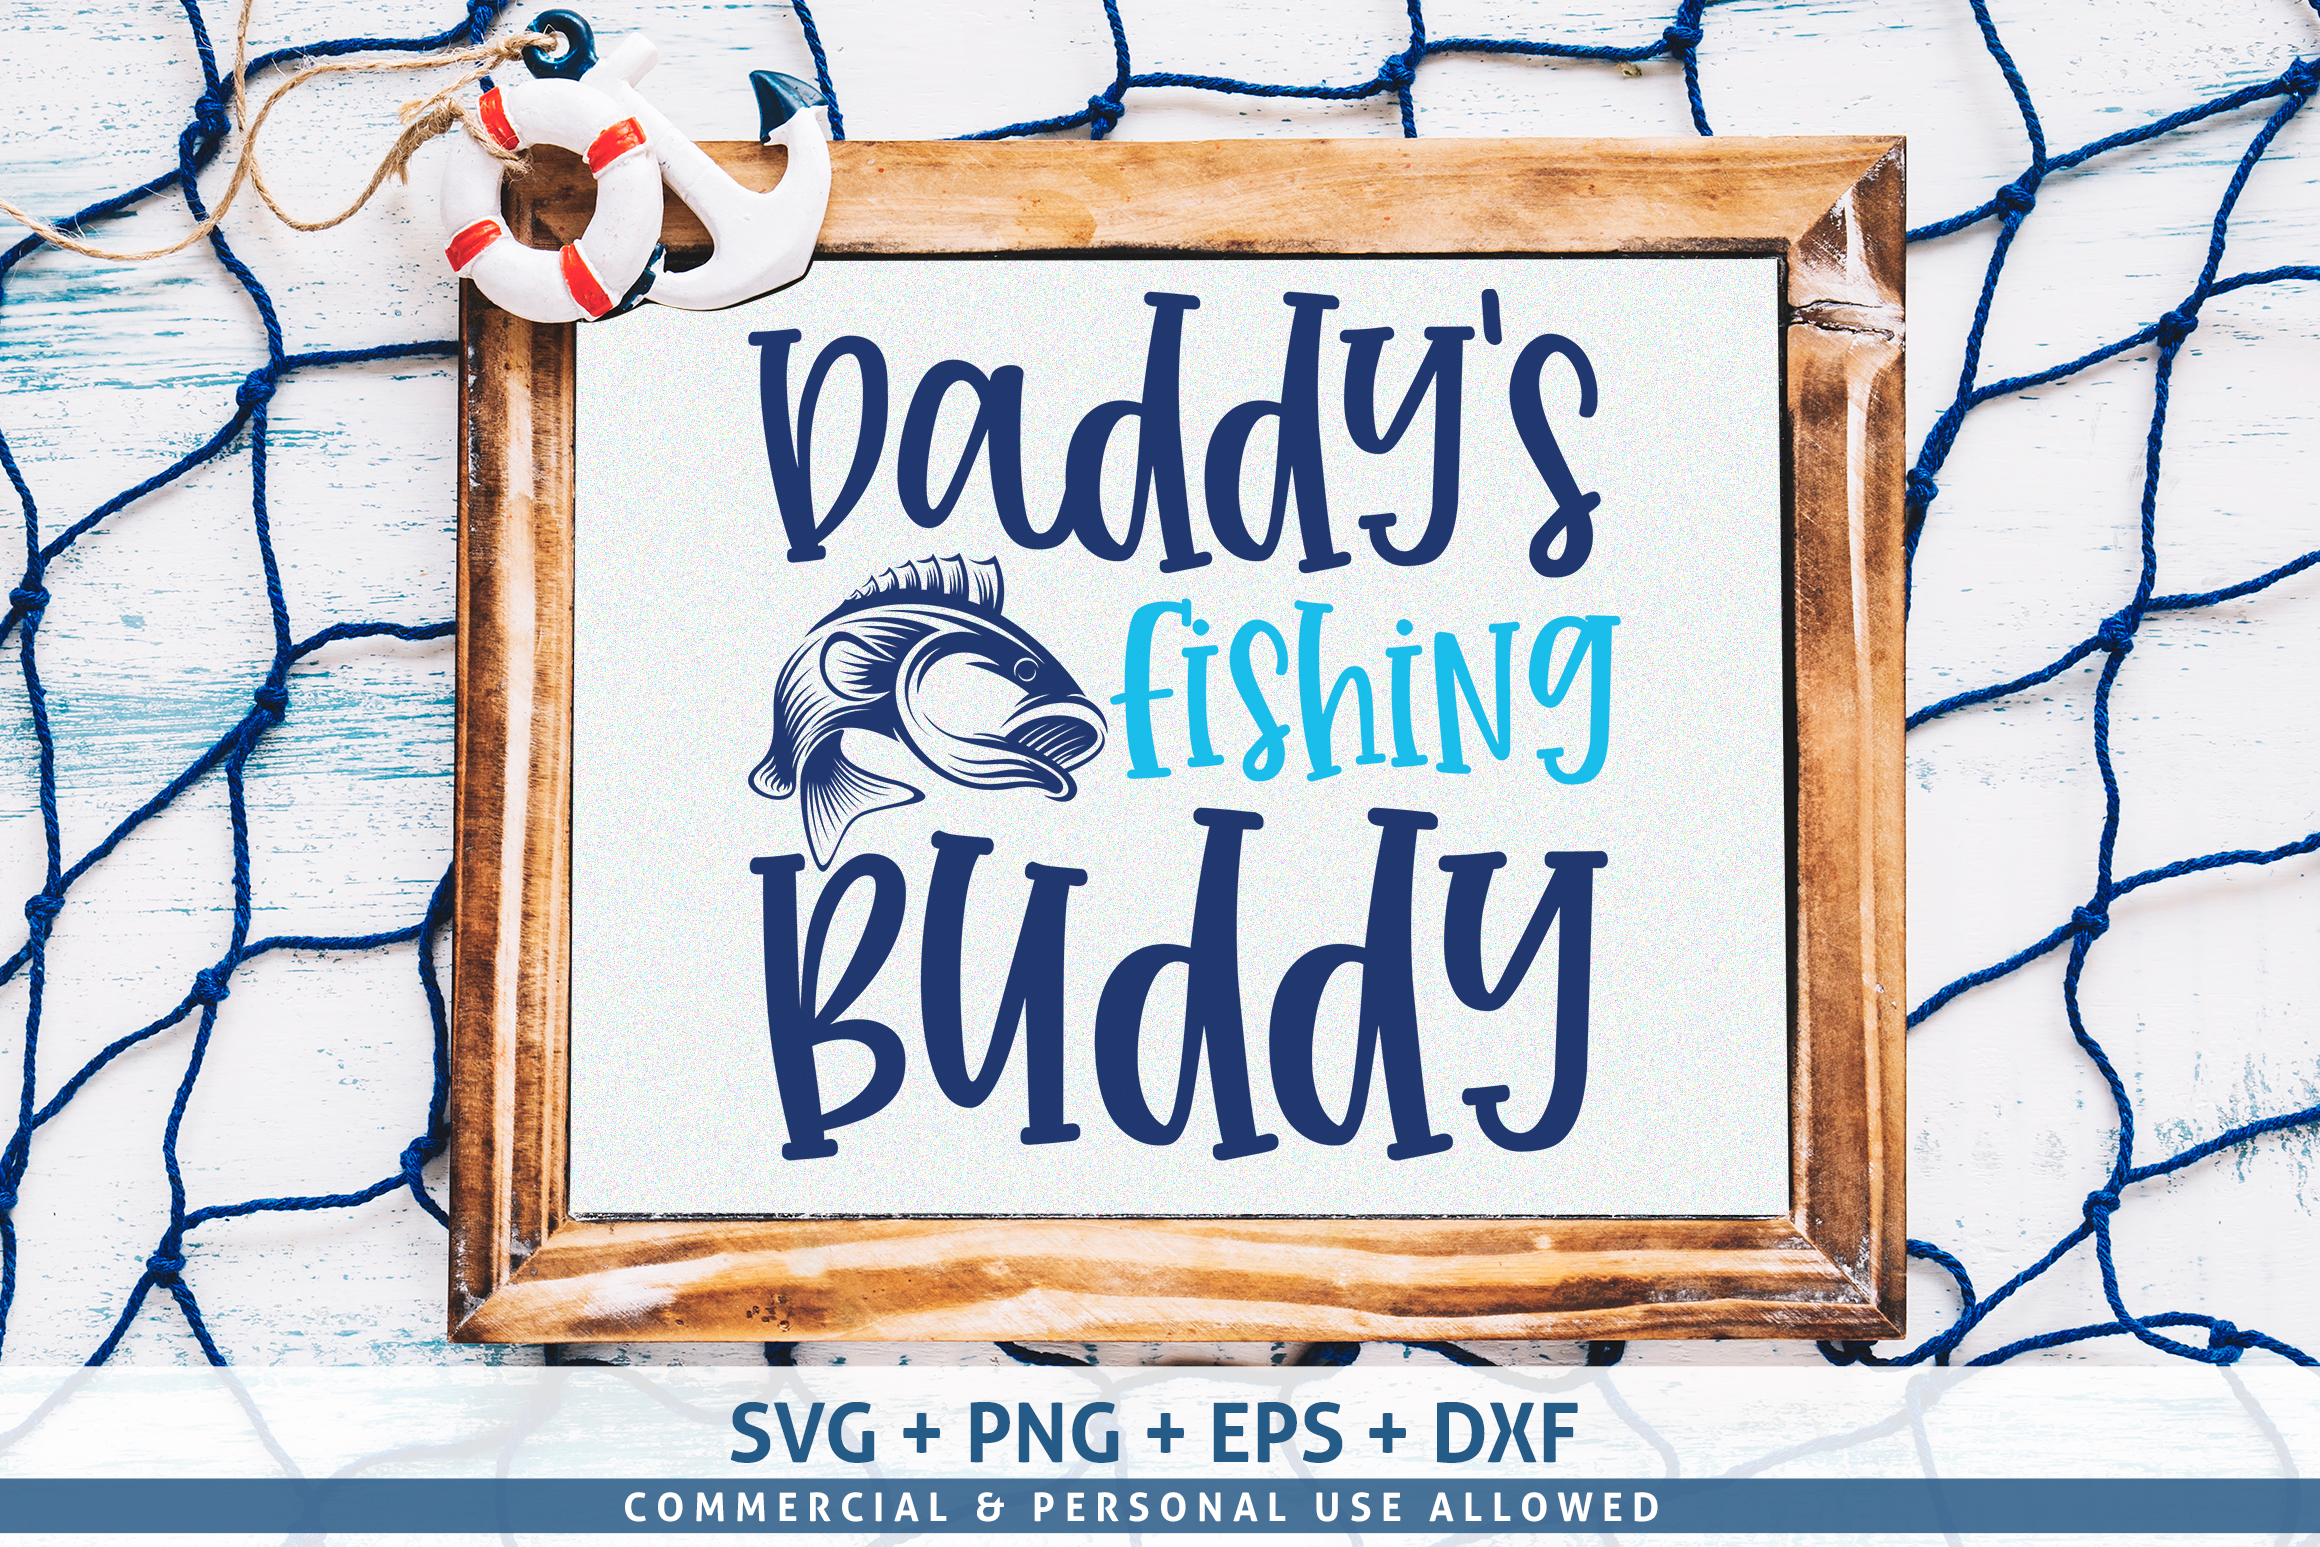 Daddy's Fishing Buddy SVG example image 1